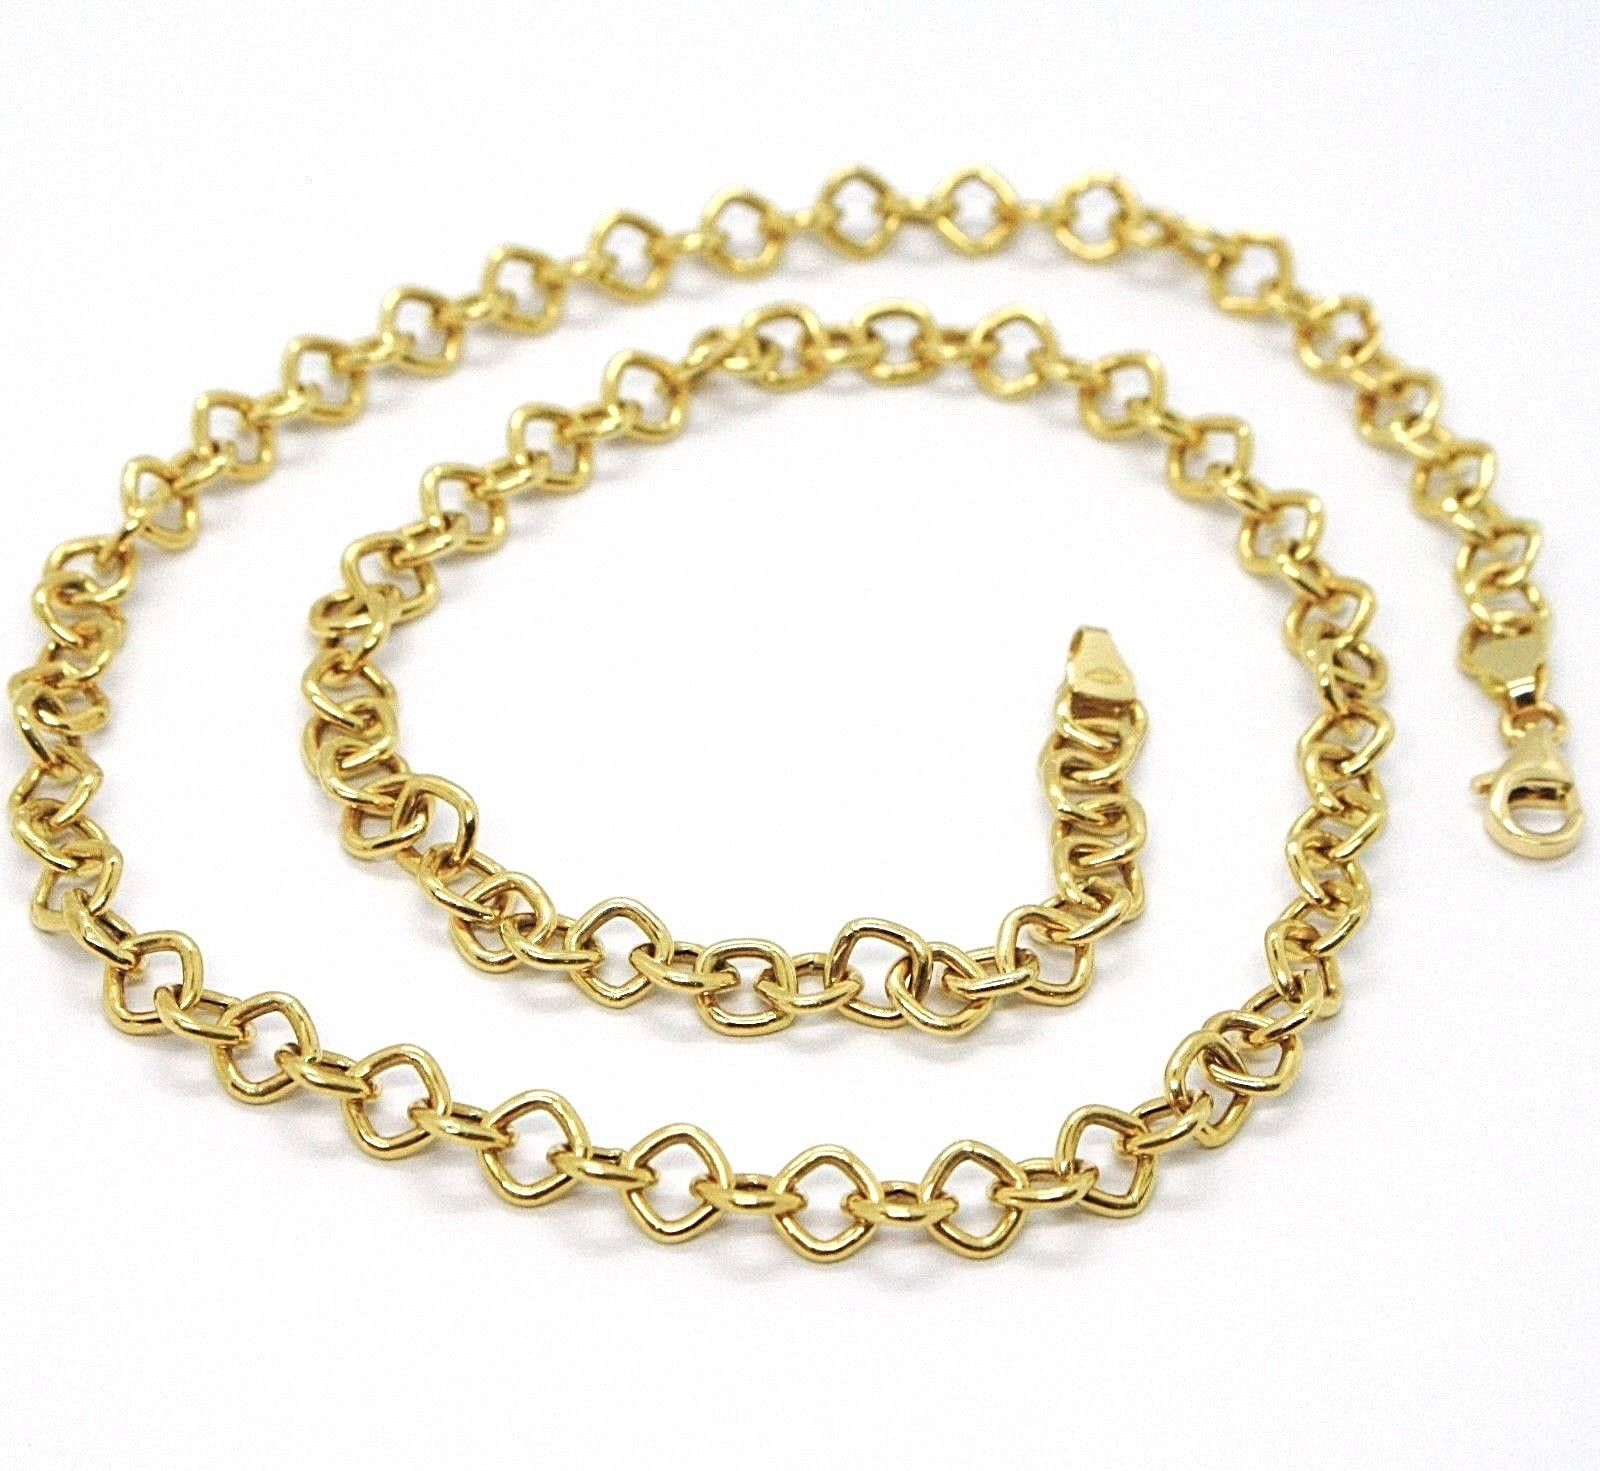 18K YELLOW GOLD CHAIN SQUARE LINK 5 MM, 16.5 INCHES, MADE IN ITALY